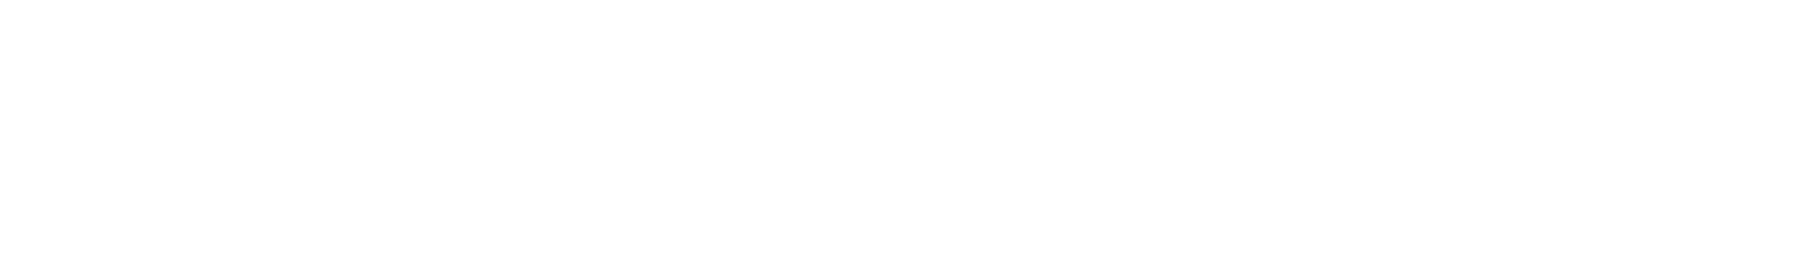 snare11